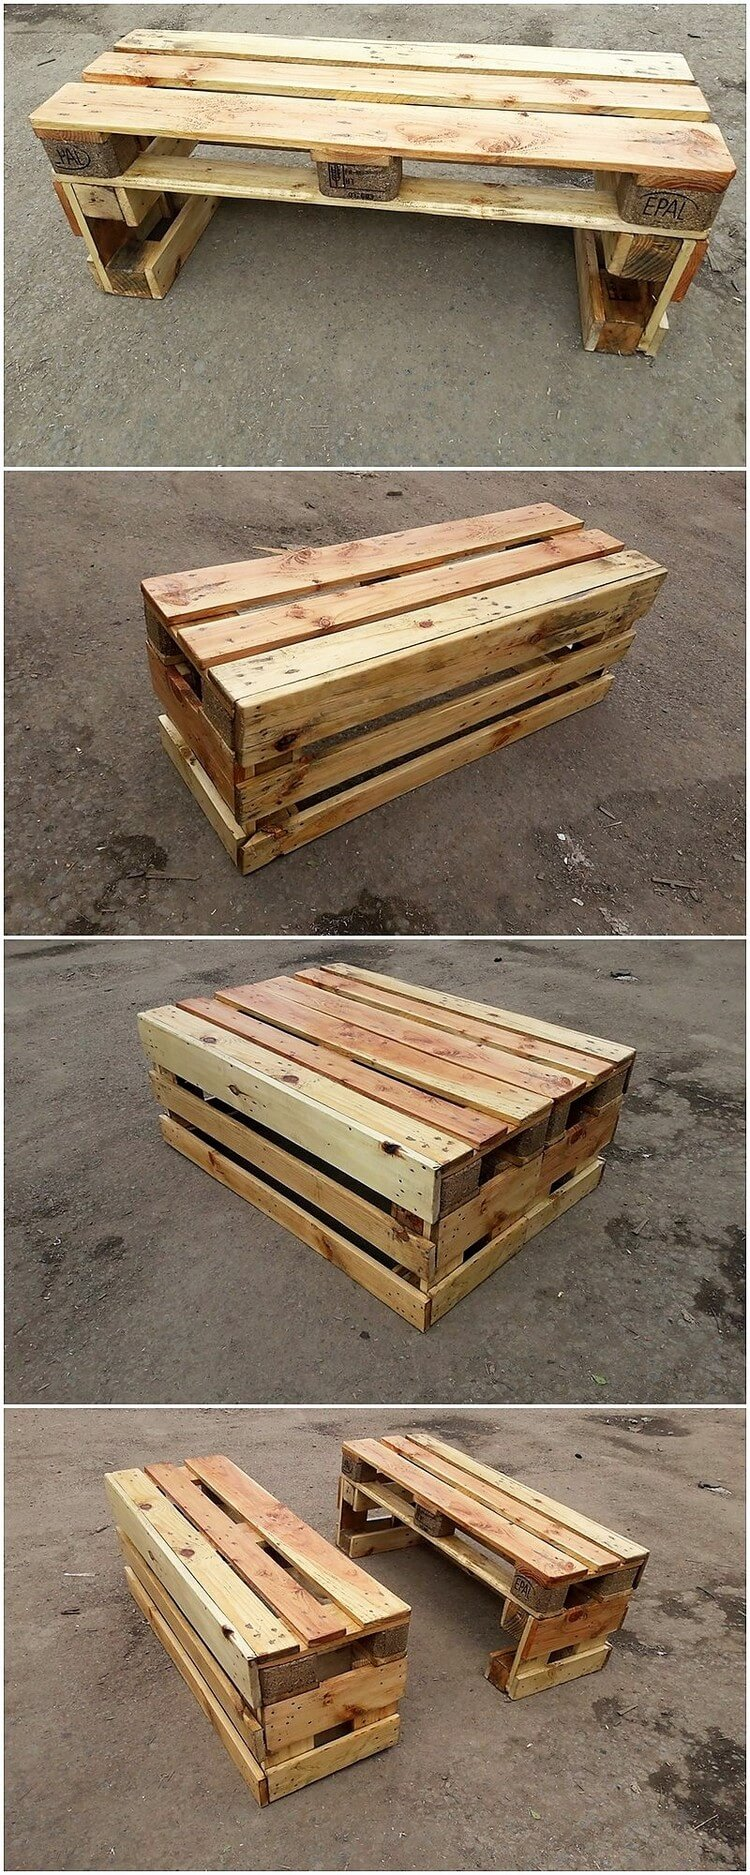 Pallet Tables or Benches